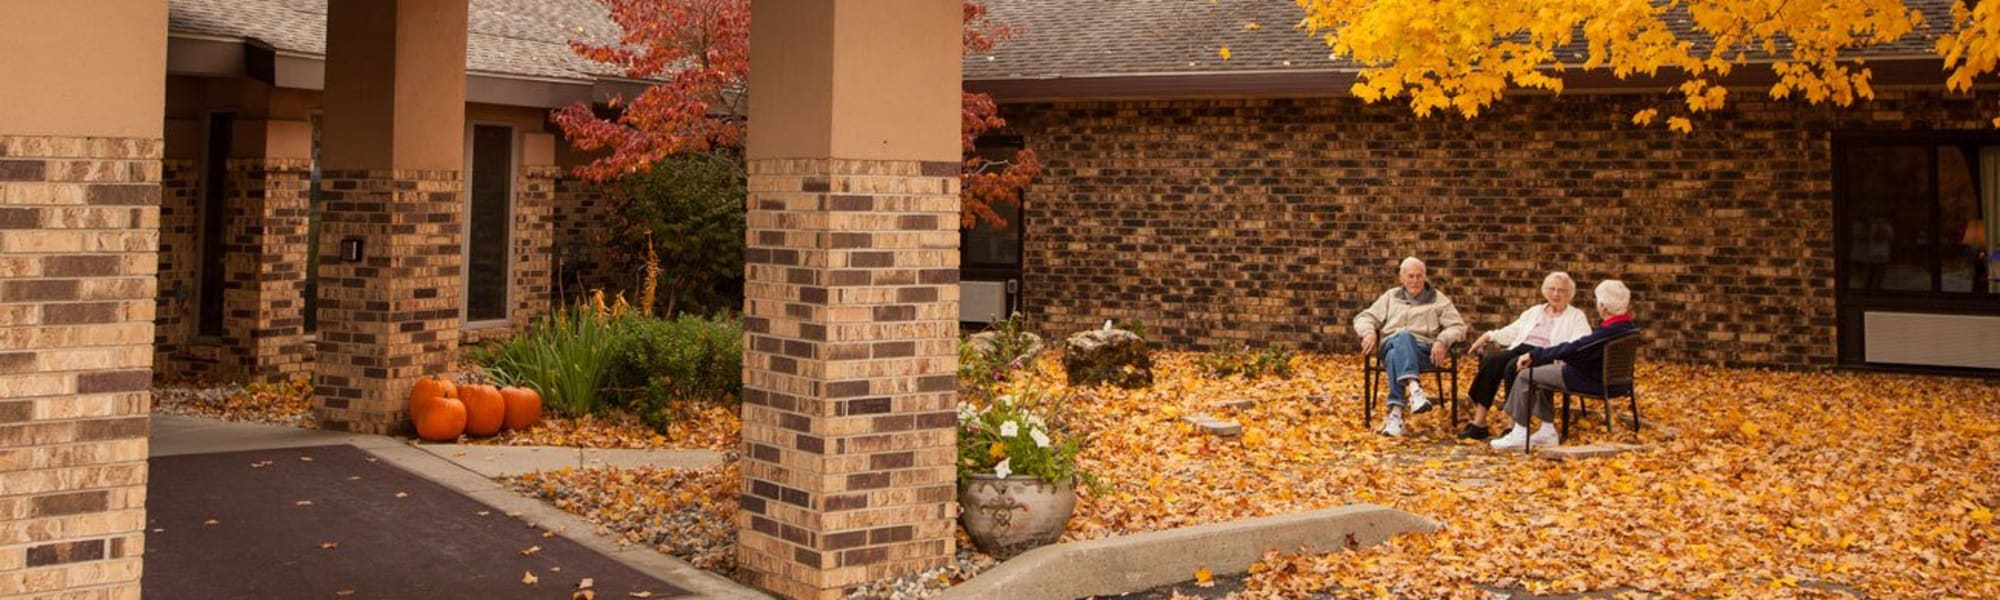 Photo Gallery at White Oaks in Lawton, Michigan